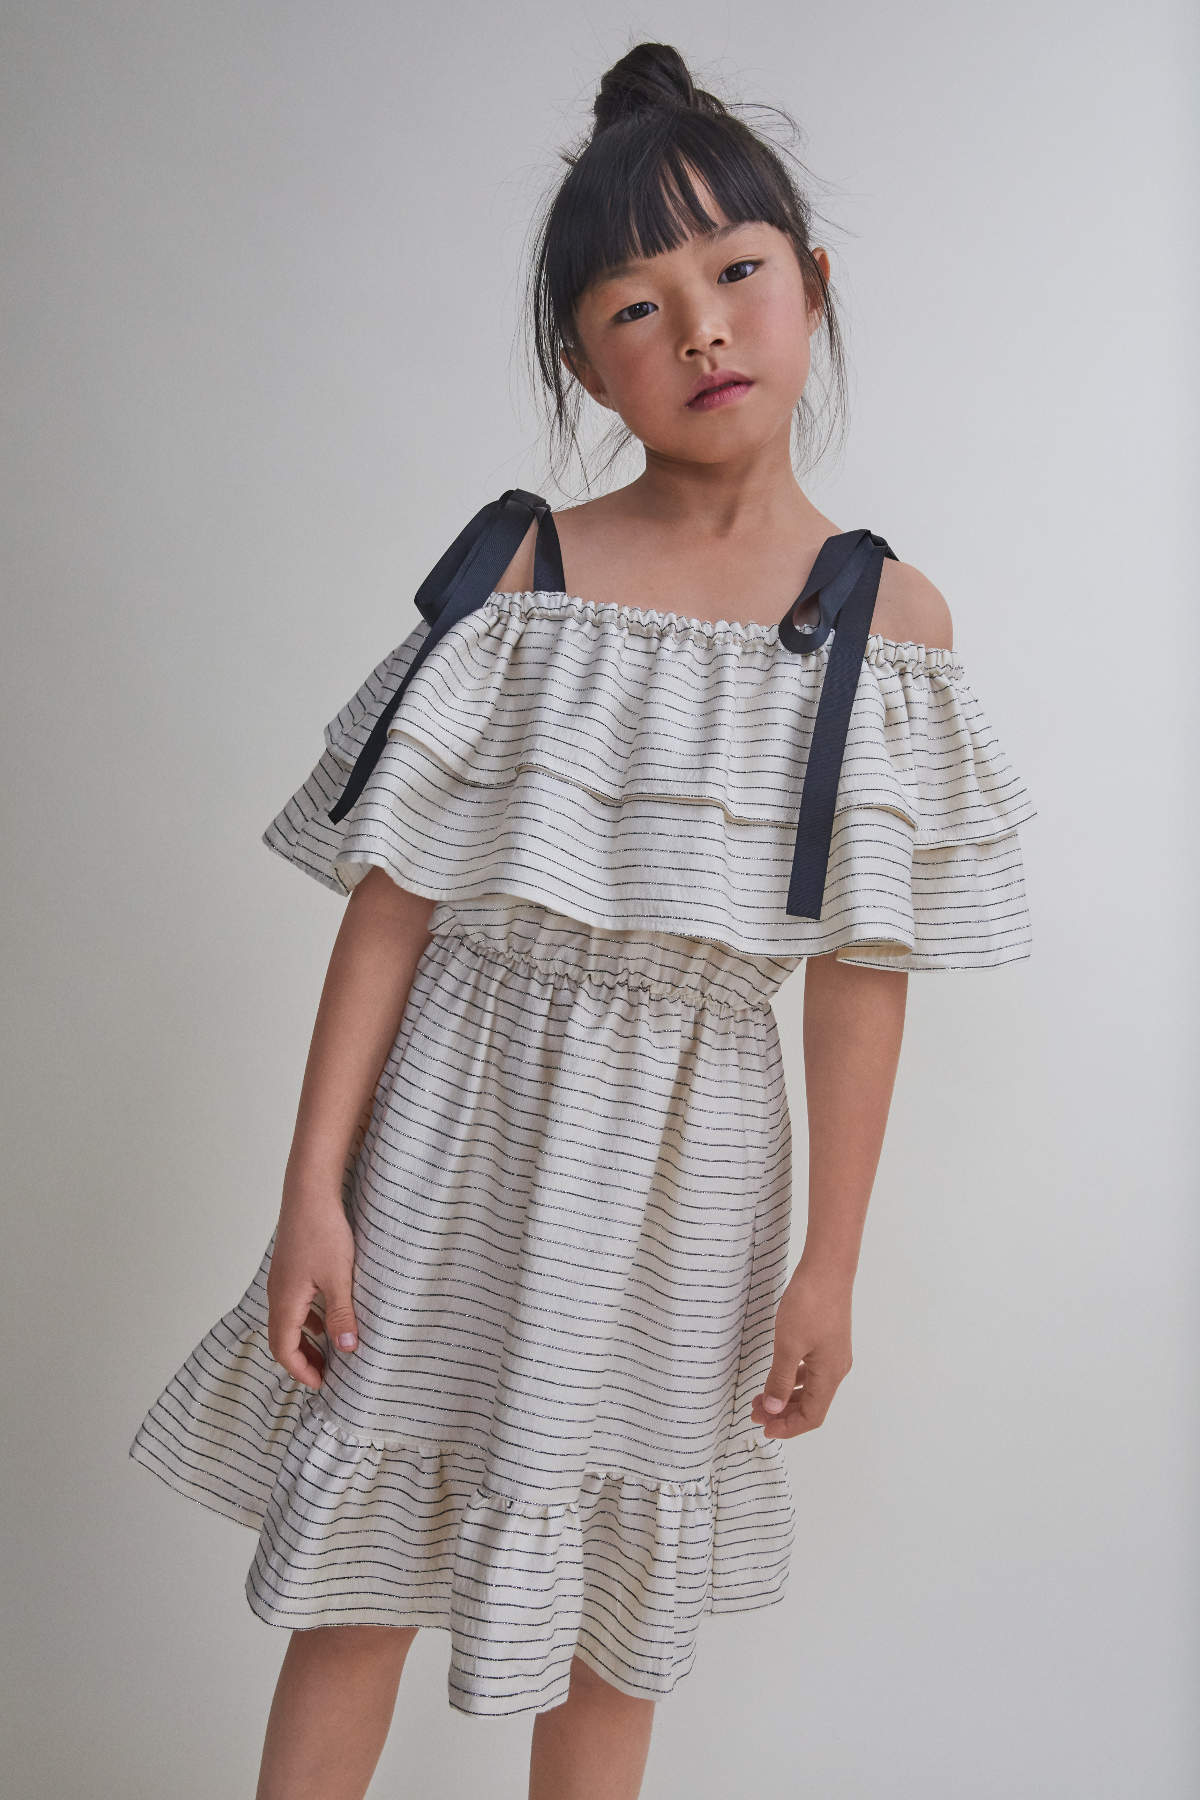 Nueces Girls' Ivory & Black Stripe Alheli Dress